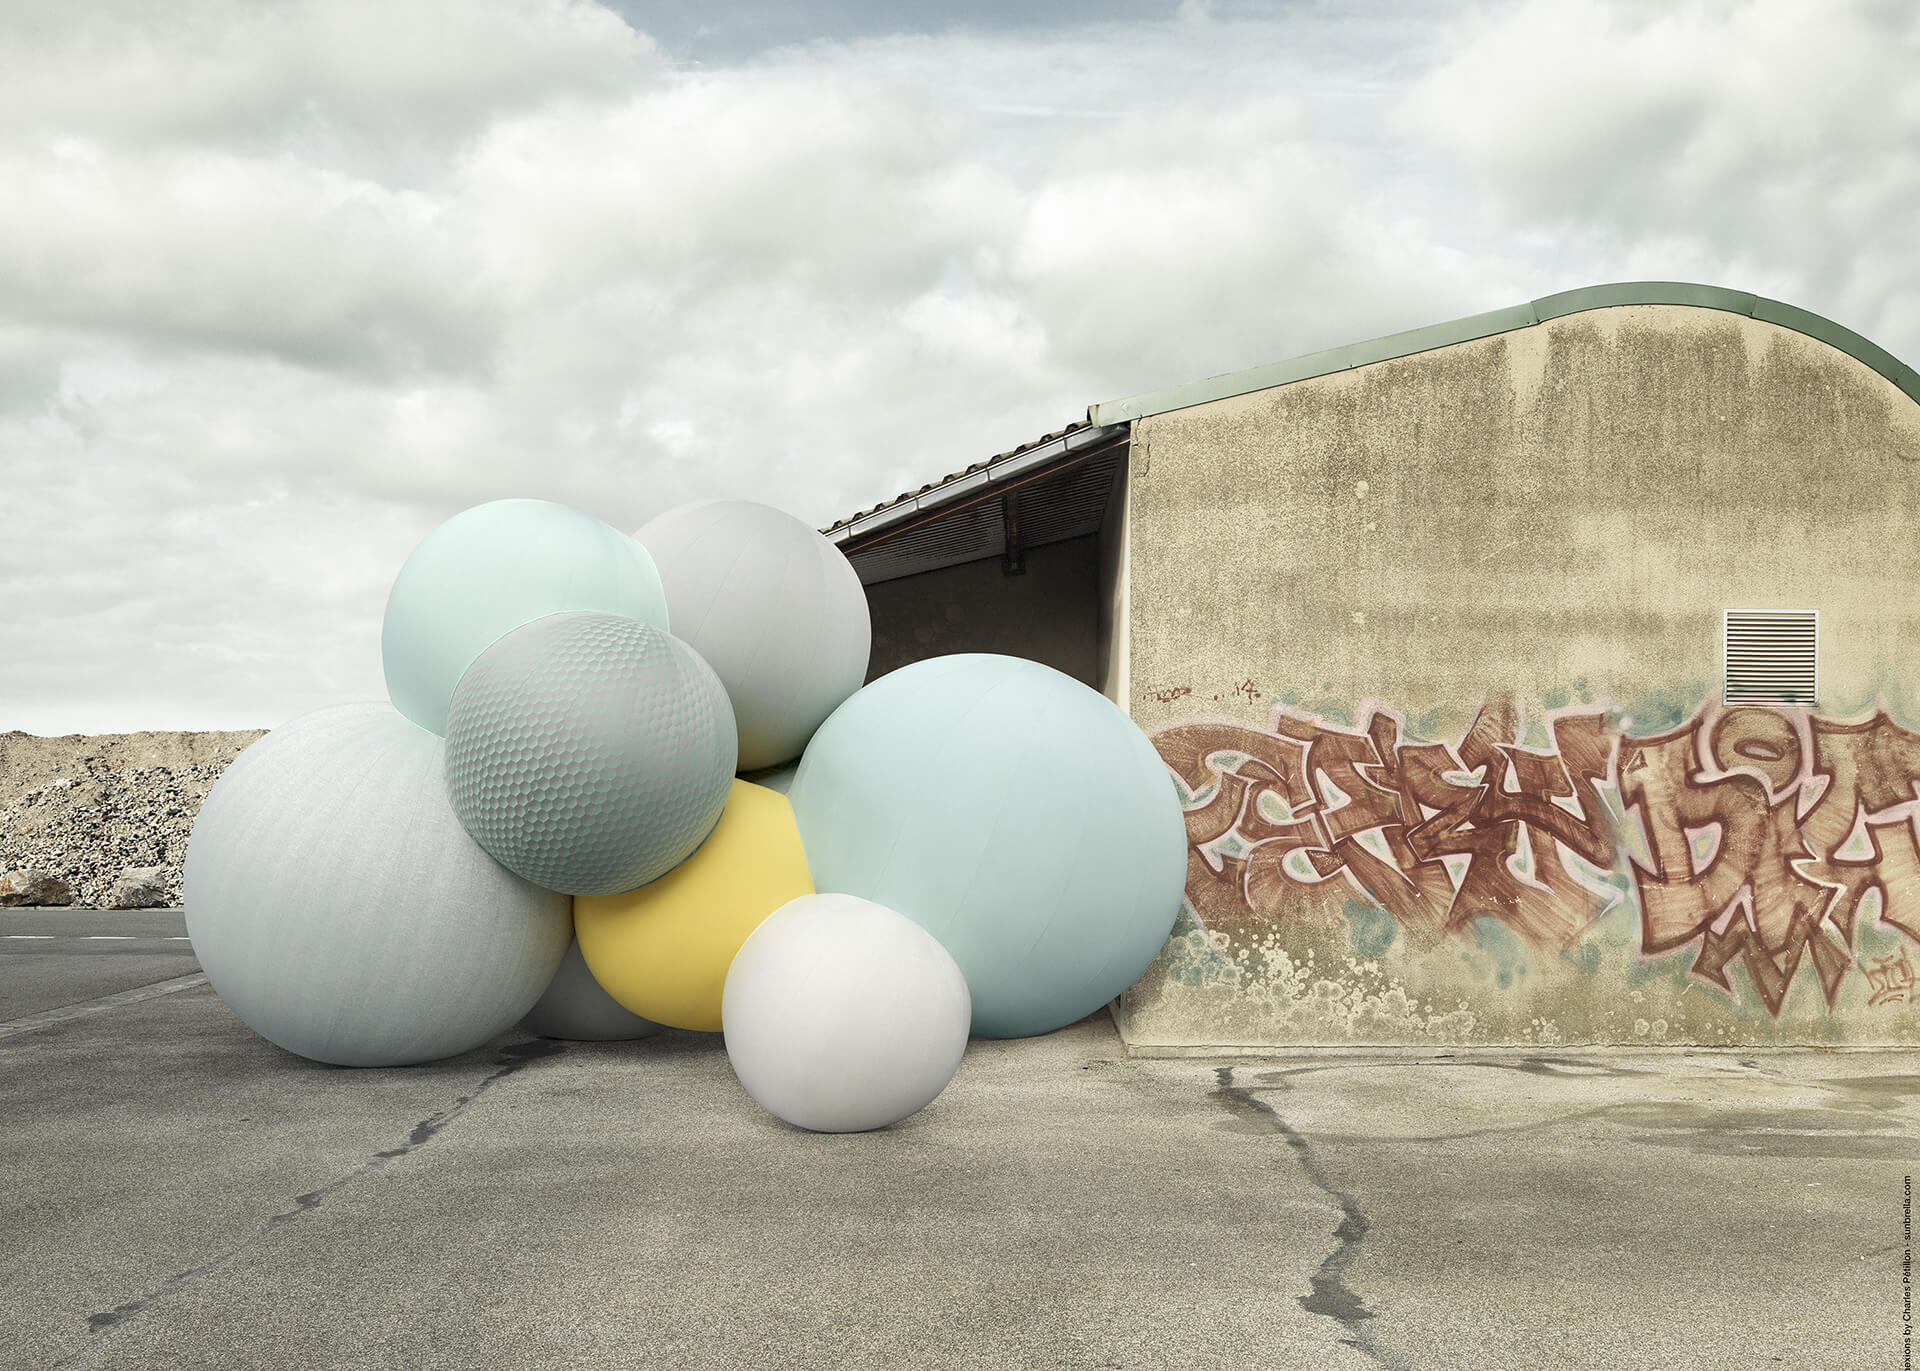 Sunbrella Connexions balloons by artist Charles Petillon are placed in an urban setting in front of a concrete building.